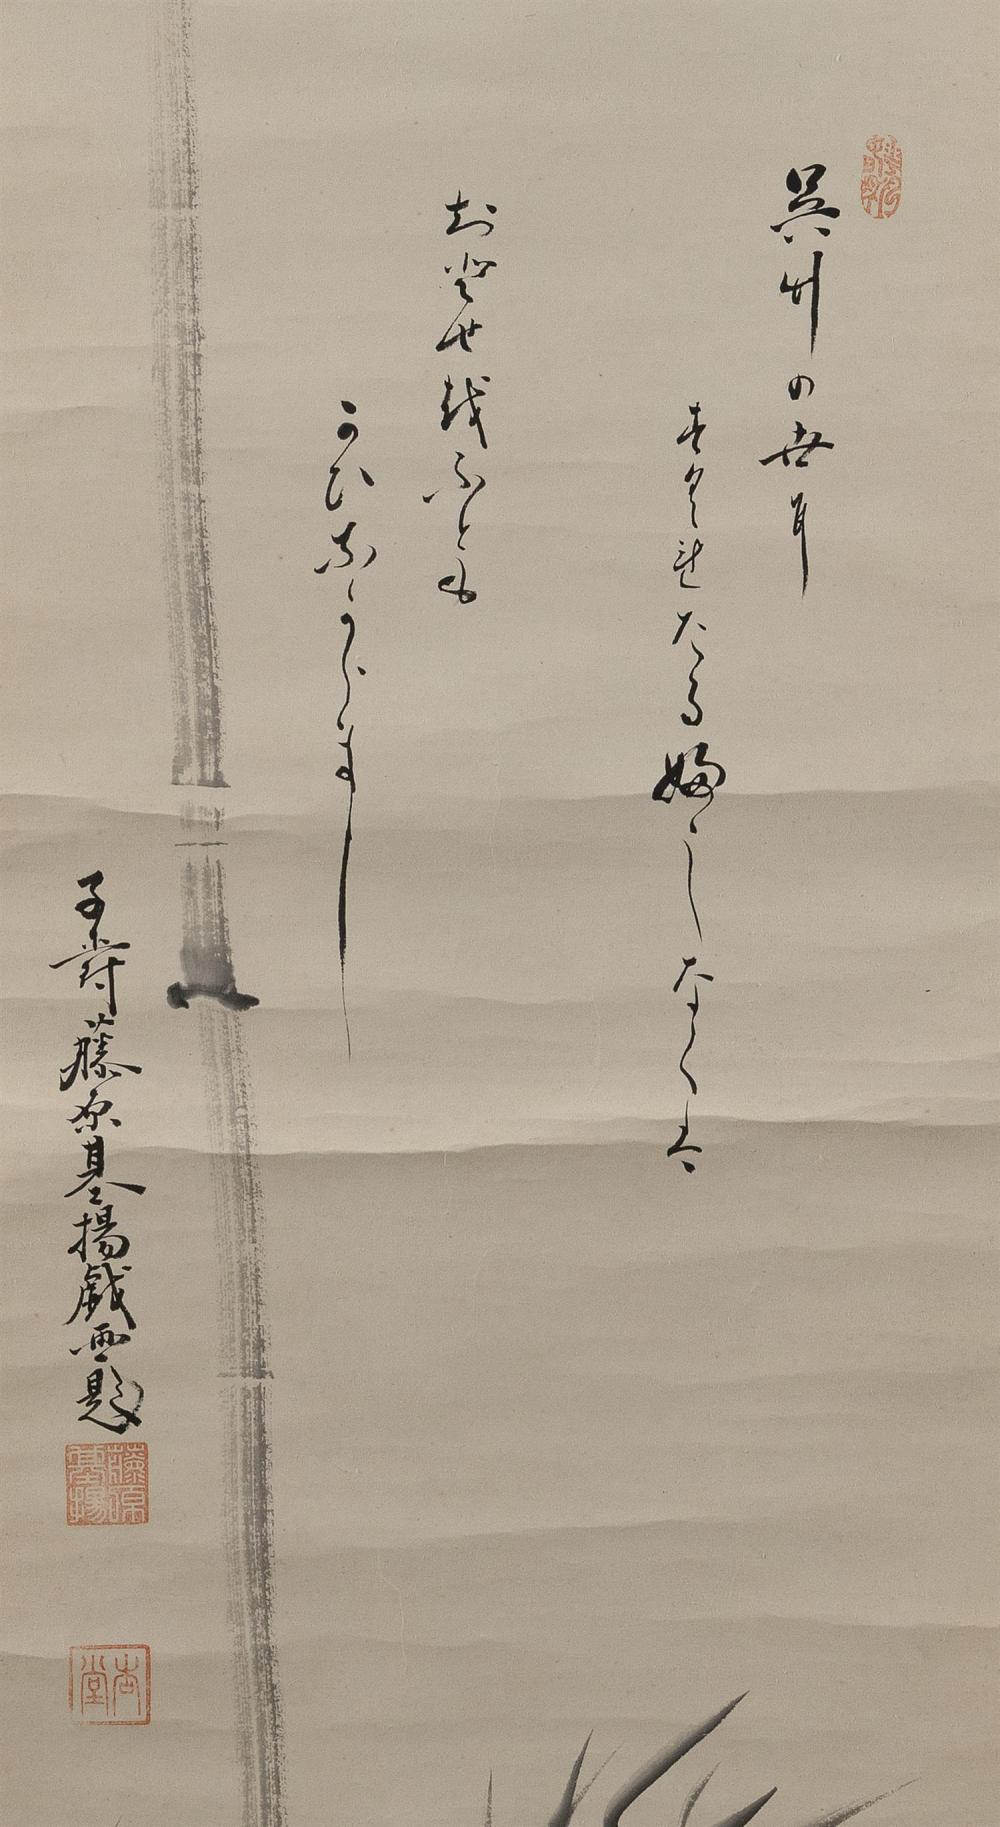 JAPANESE SHIJO SCHOOL SCROLL PAINTING ON PAPER Depicts bamboo and cursive calligraphy. Marked with signature and seal marks. 54.75